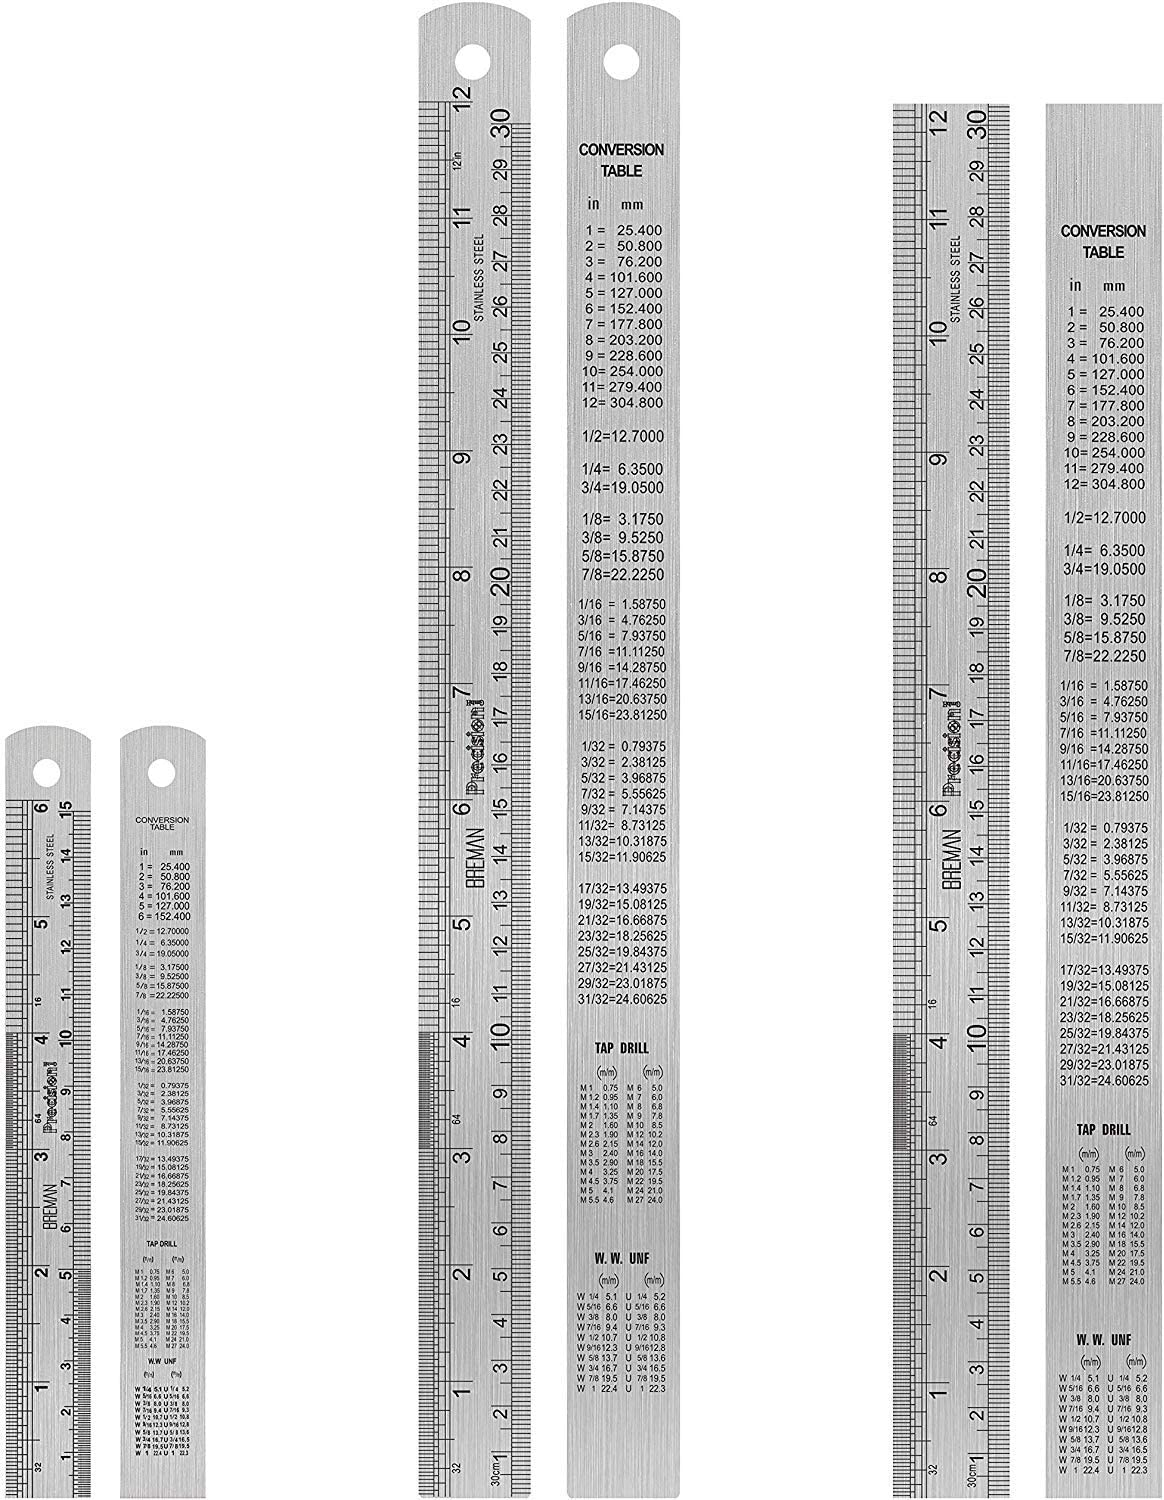 Breman Precision 3 pc Steel Ruler Set - 6 Inch Ruler and 2 pc 12 Inch Stainless Steel Straight Edge Metal Rulers with Inch and Metric Graduation and Handy Conversion Table for School Office and More